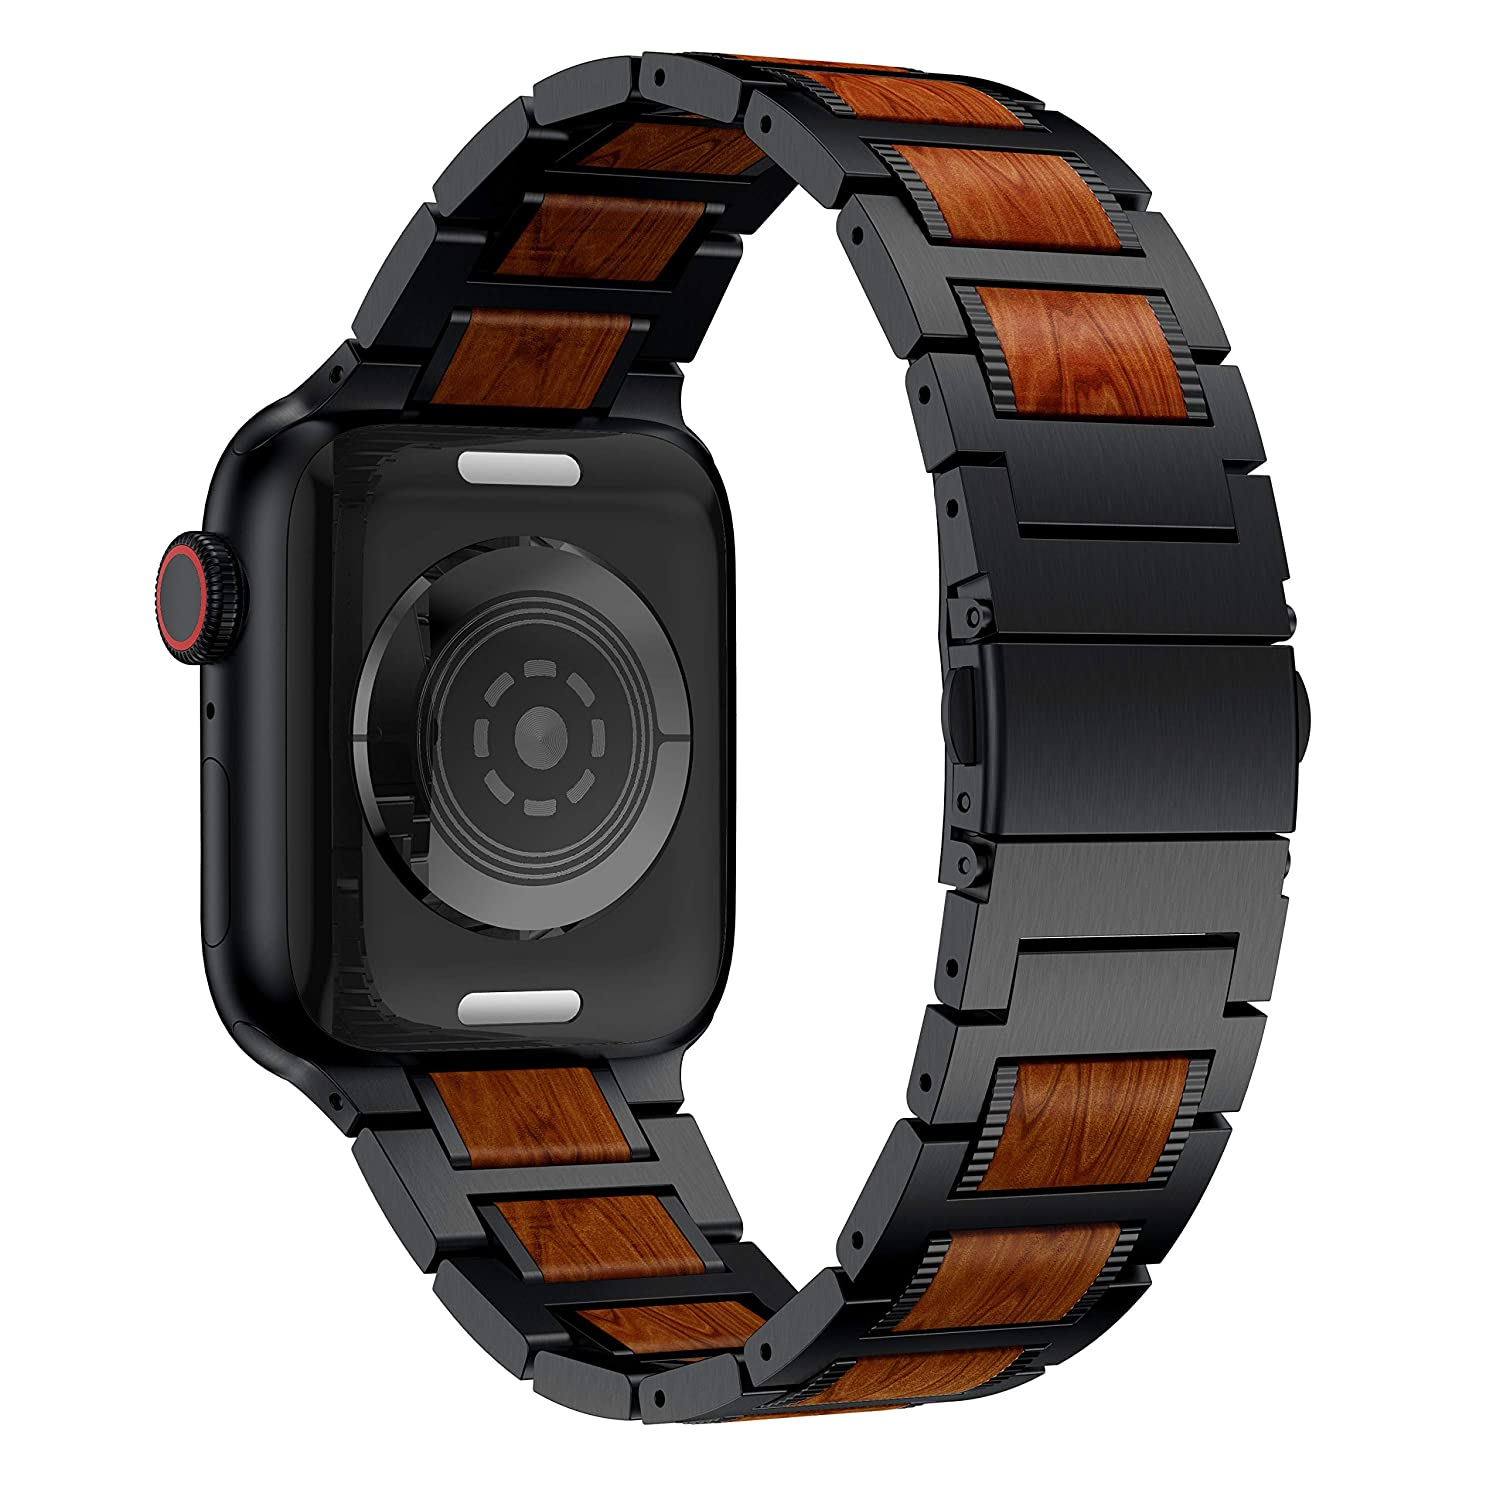 Anrir Compatible for Apple Watch 44mm 42mm Smart Watch, Red Sandalwood Wood and Black Stainless Steel Replacement Wrist Strap Compatible with Apple ...